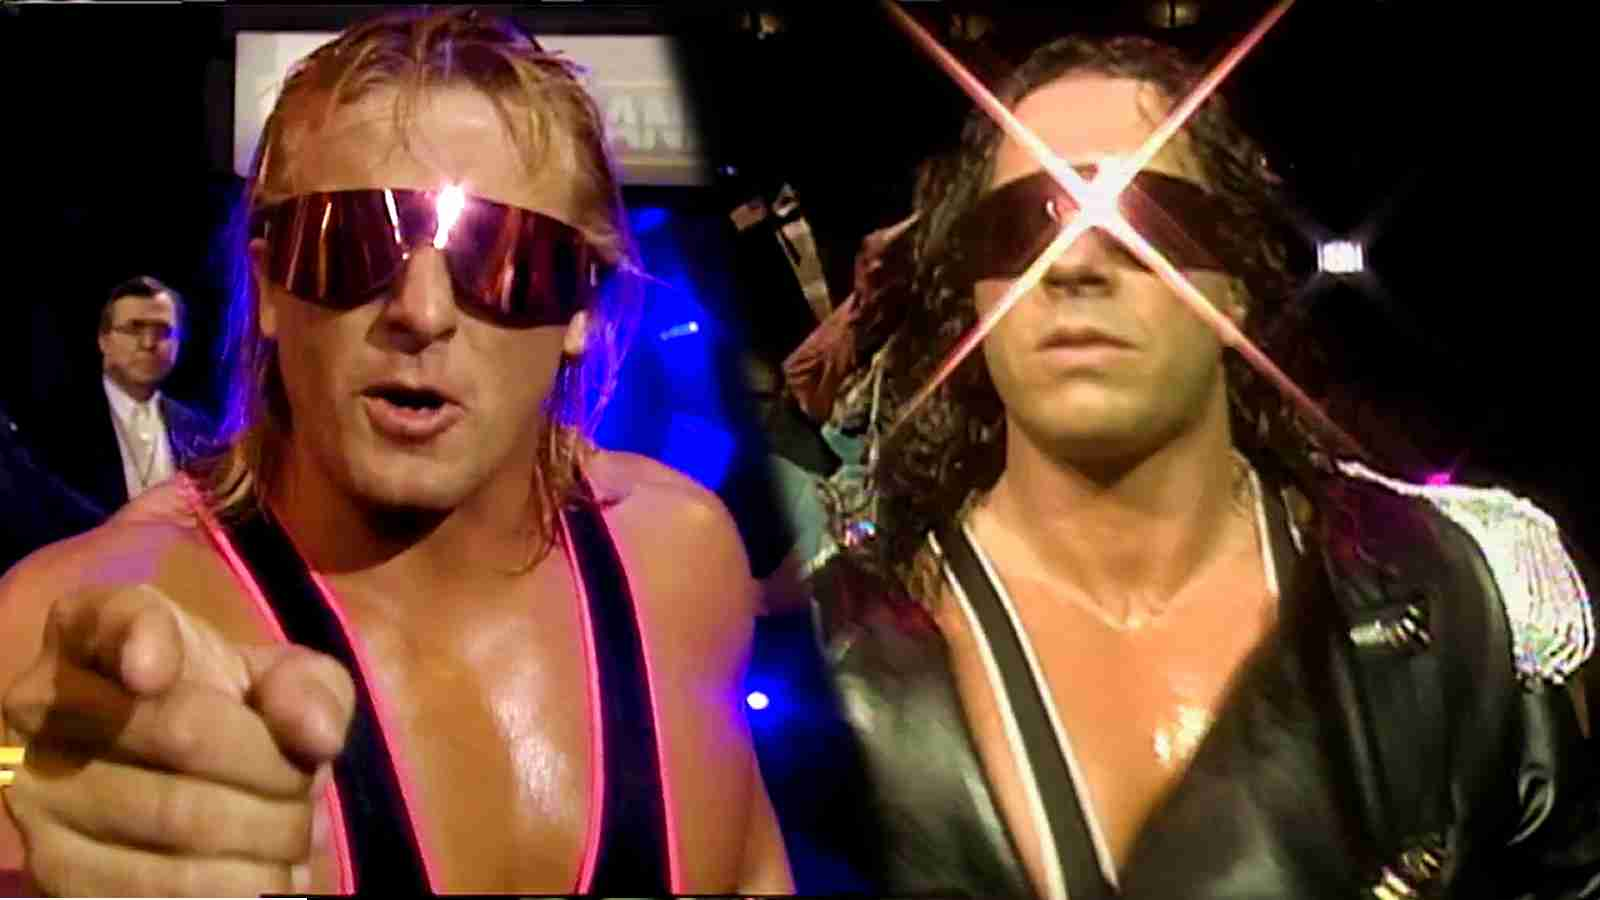 Owen Hart vs Bret Hart featured image